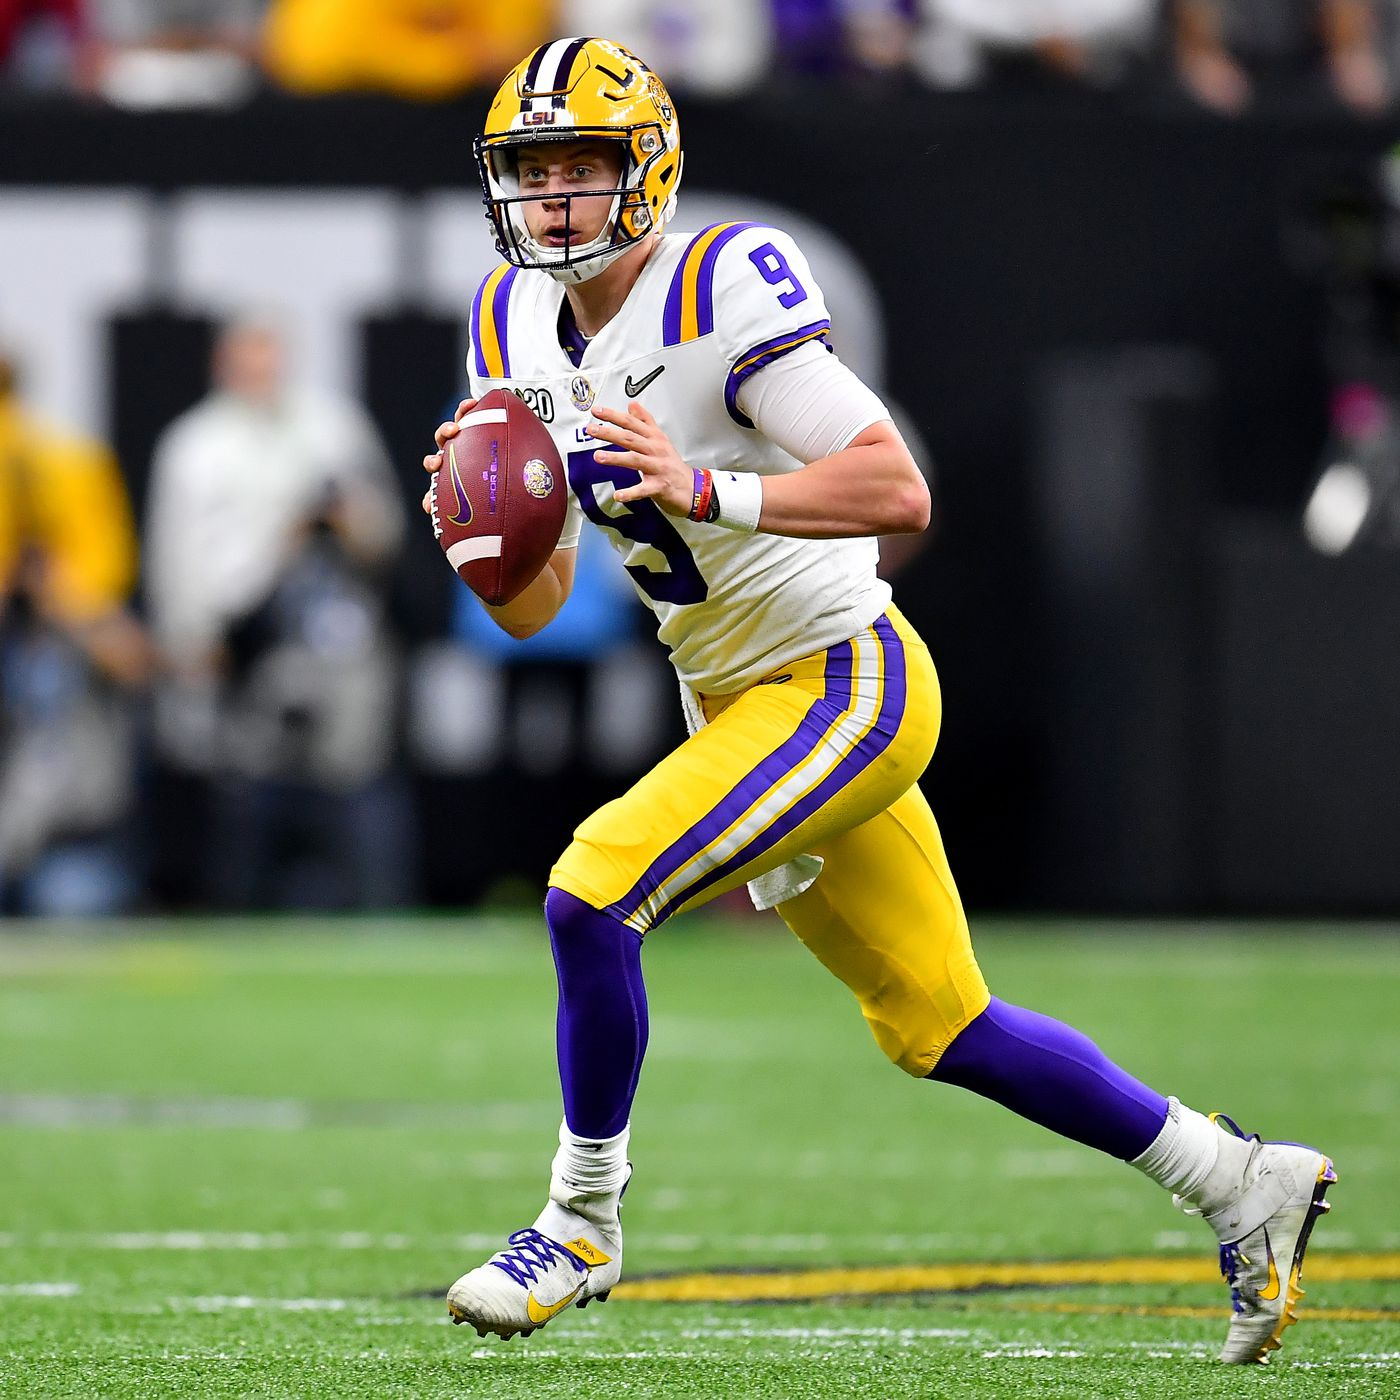 NFL Draft Film Room: The best throws of Joe Burrow's historic 2019 ...